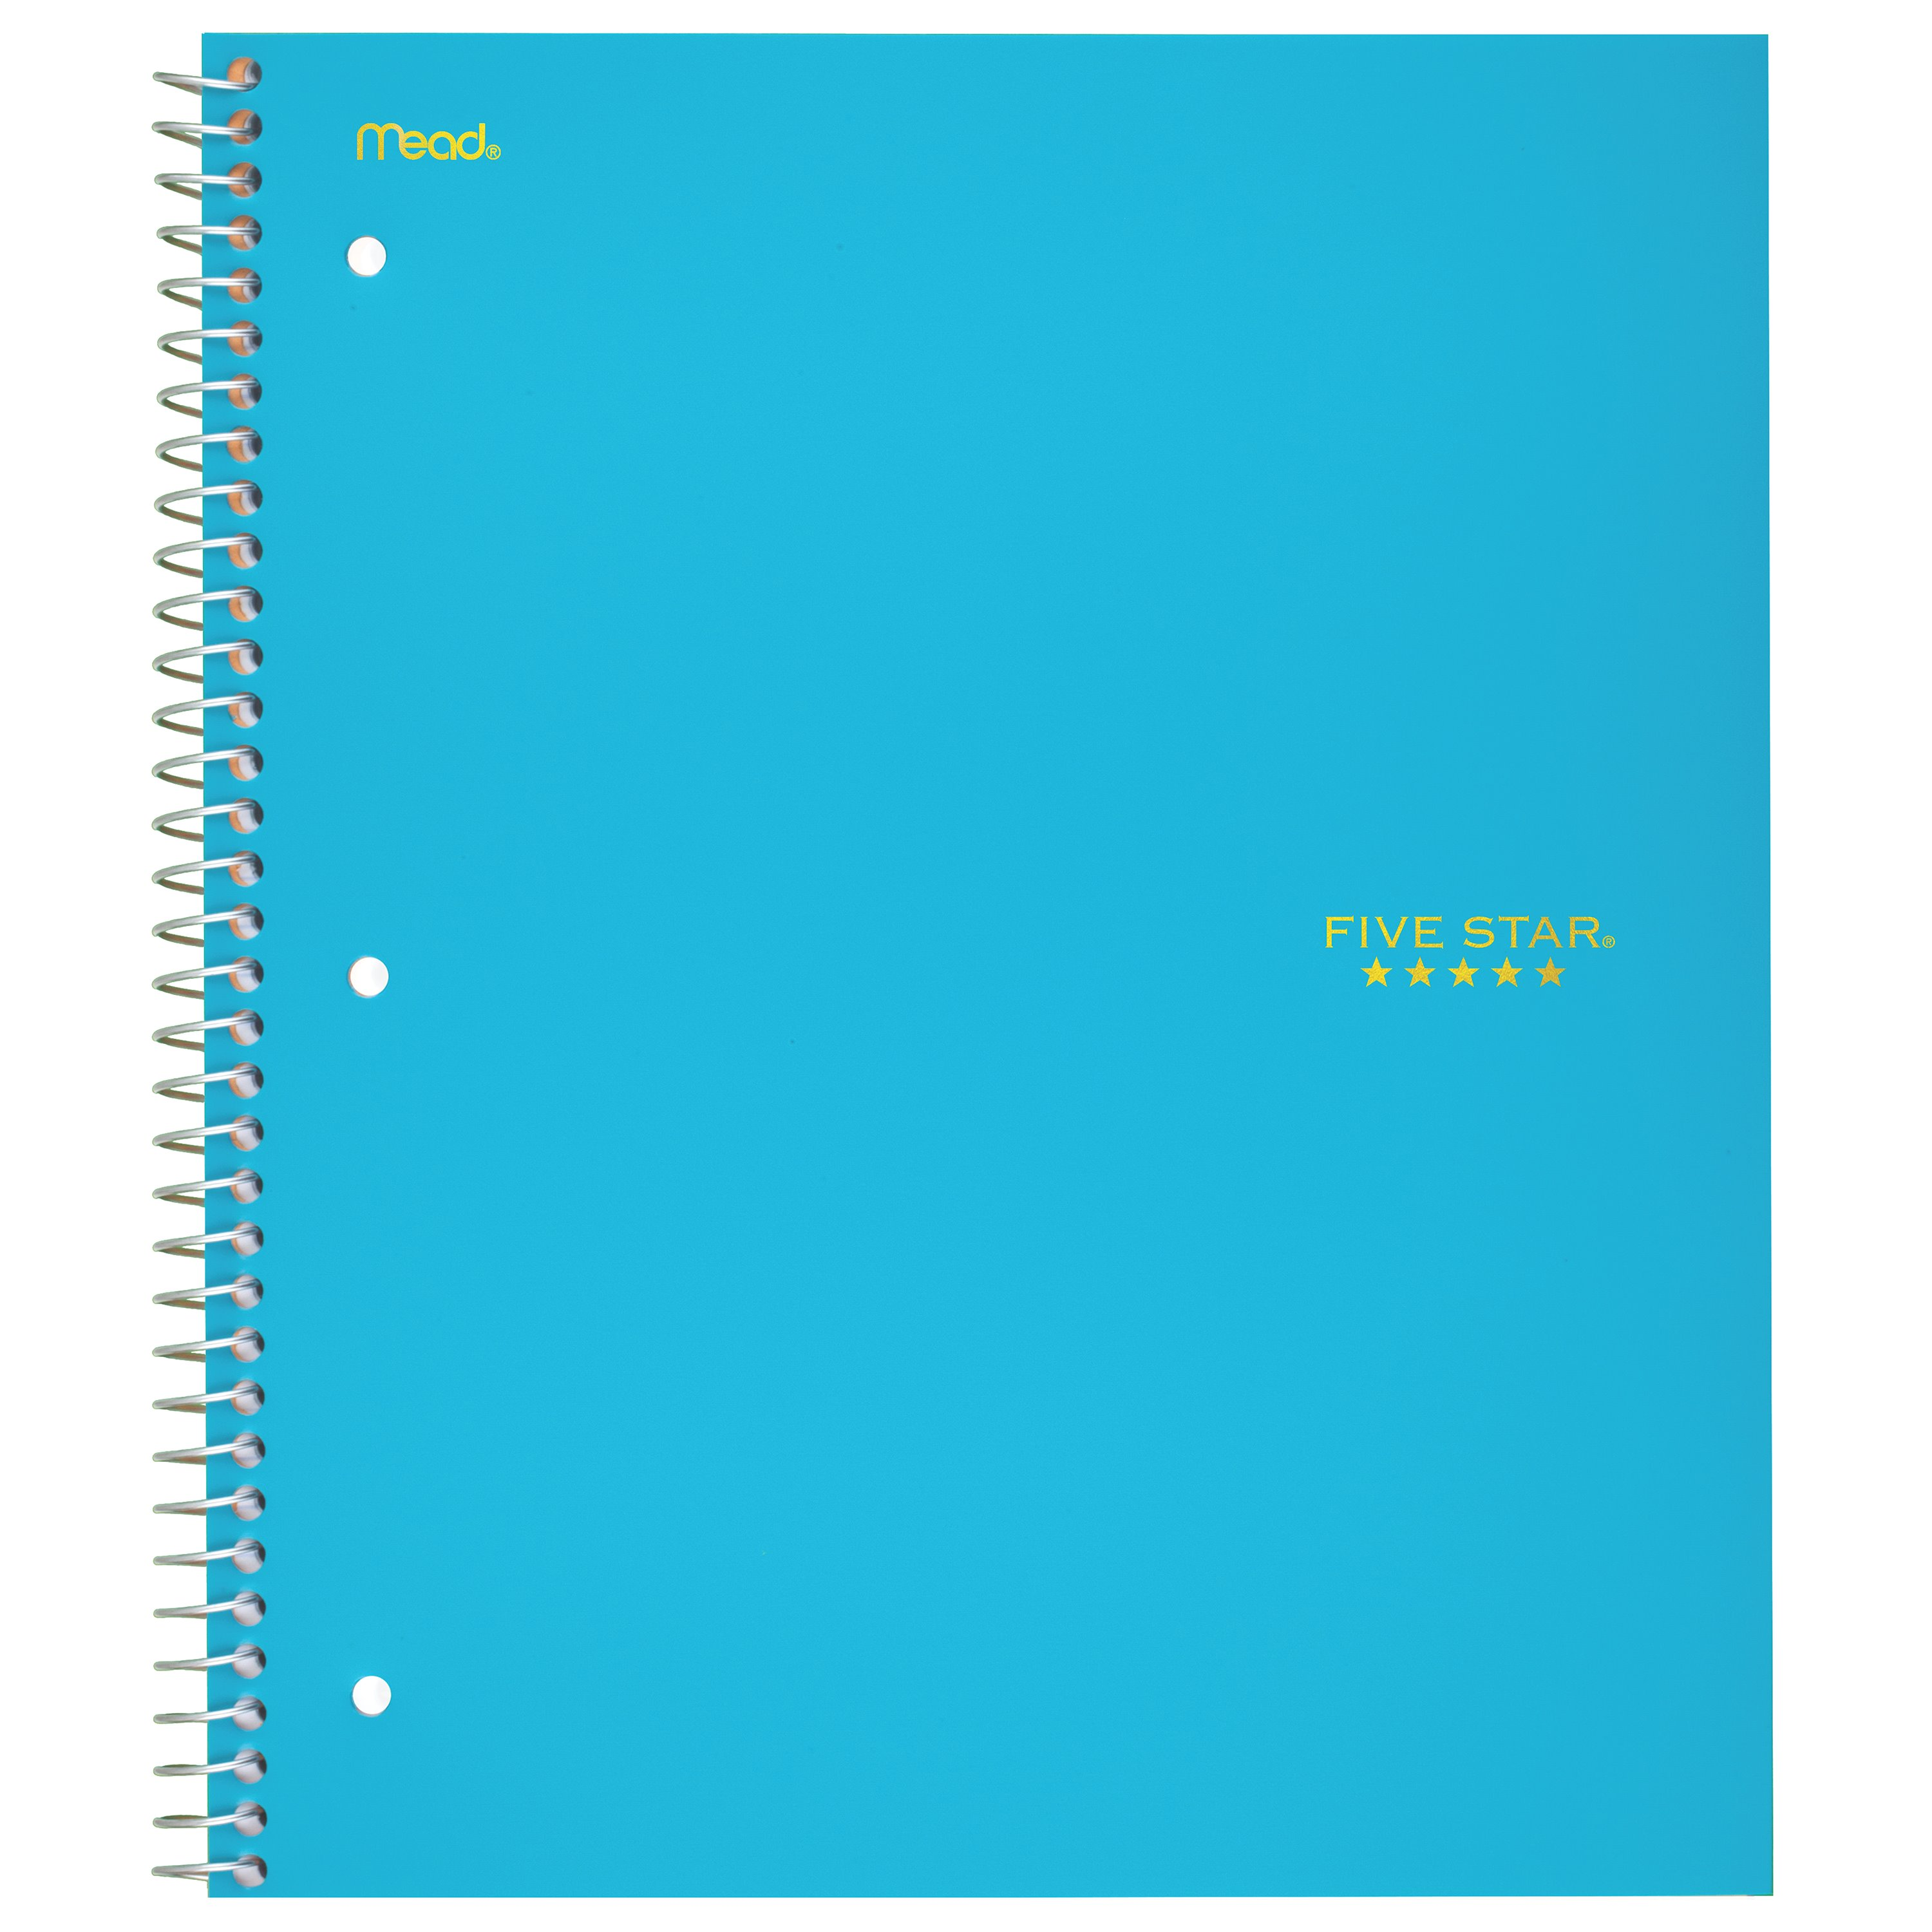 Five Star Trend Notebook, 5 Subject, Wide Ruled, Assorted Colors (05491)